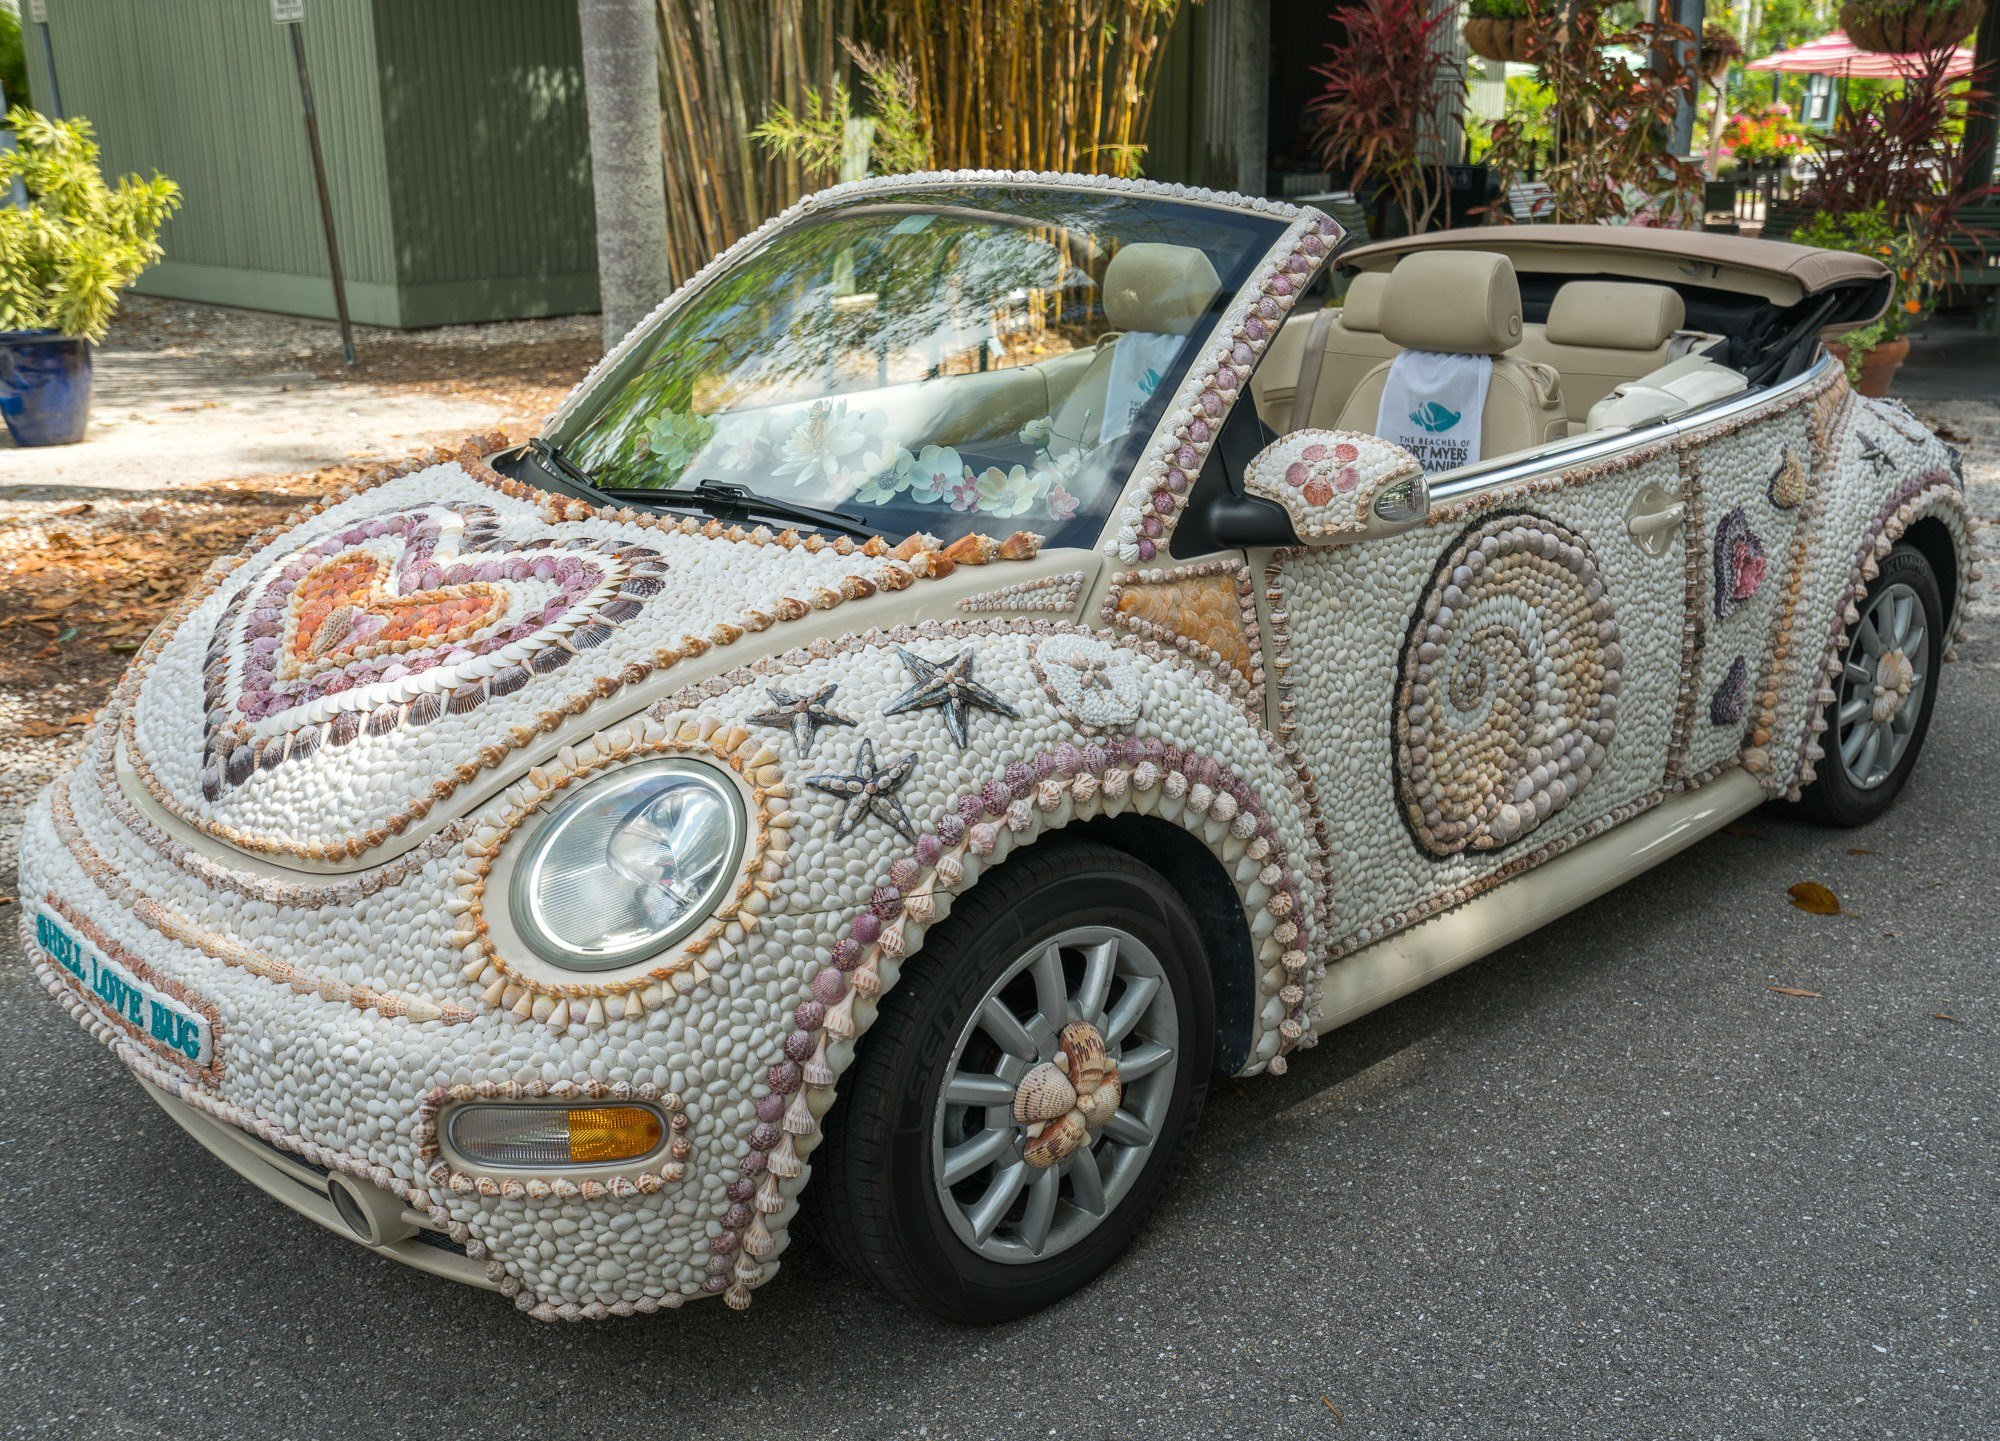 The Shell Love Bug is a Volkswagon Beetle covered in 20,000 shells.